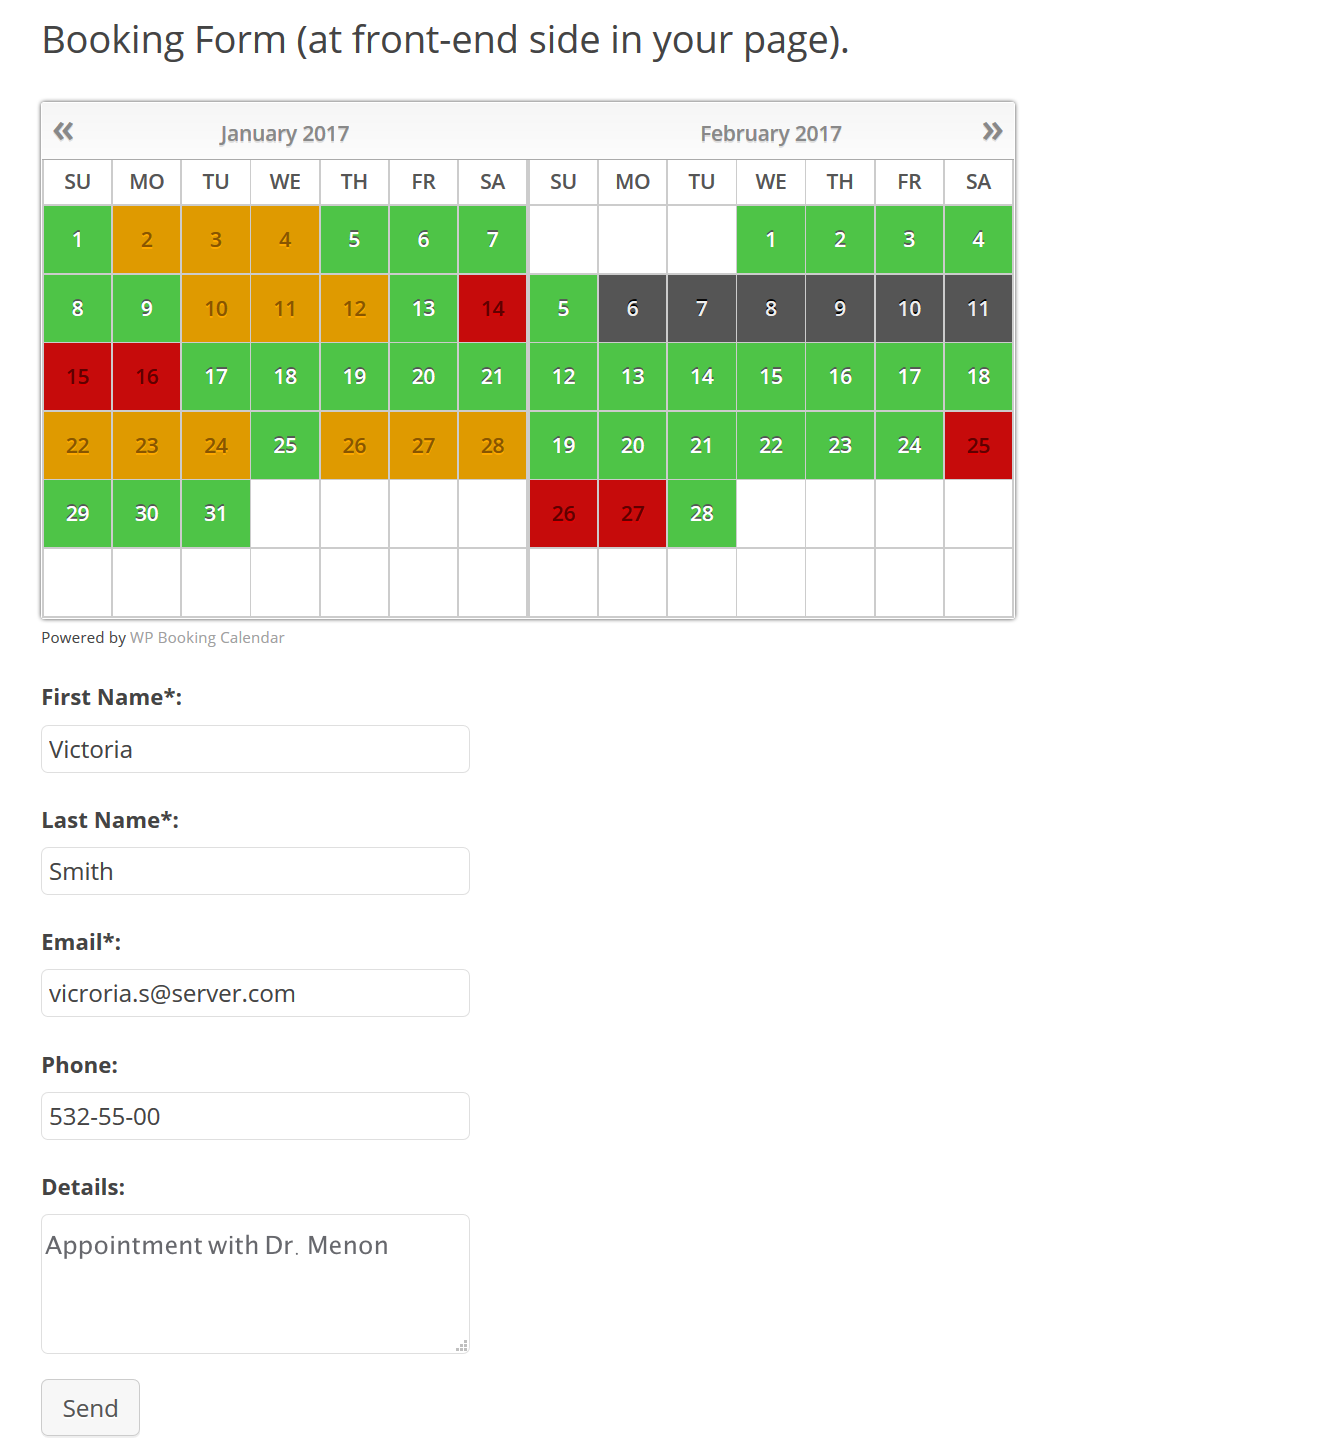 Allow patients to book slots to connect with experts using booking calendar